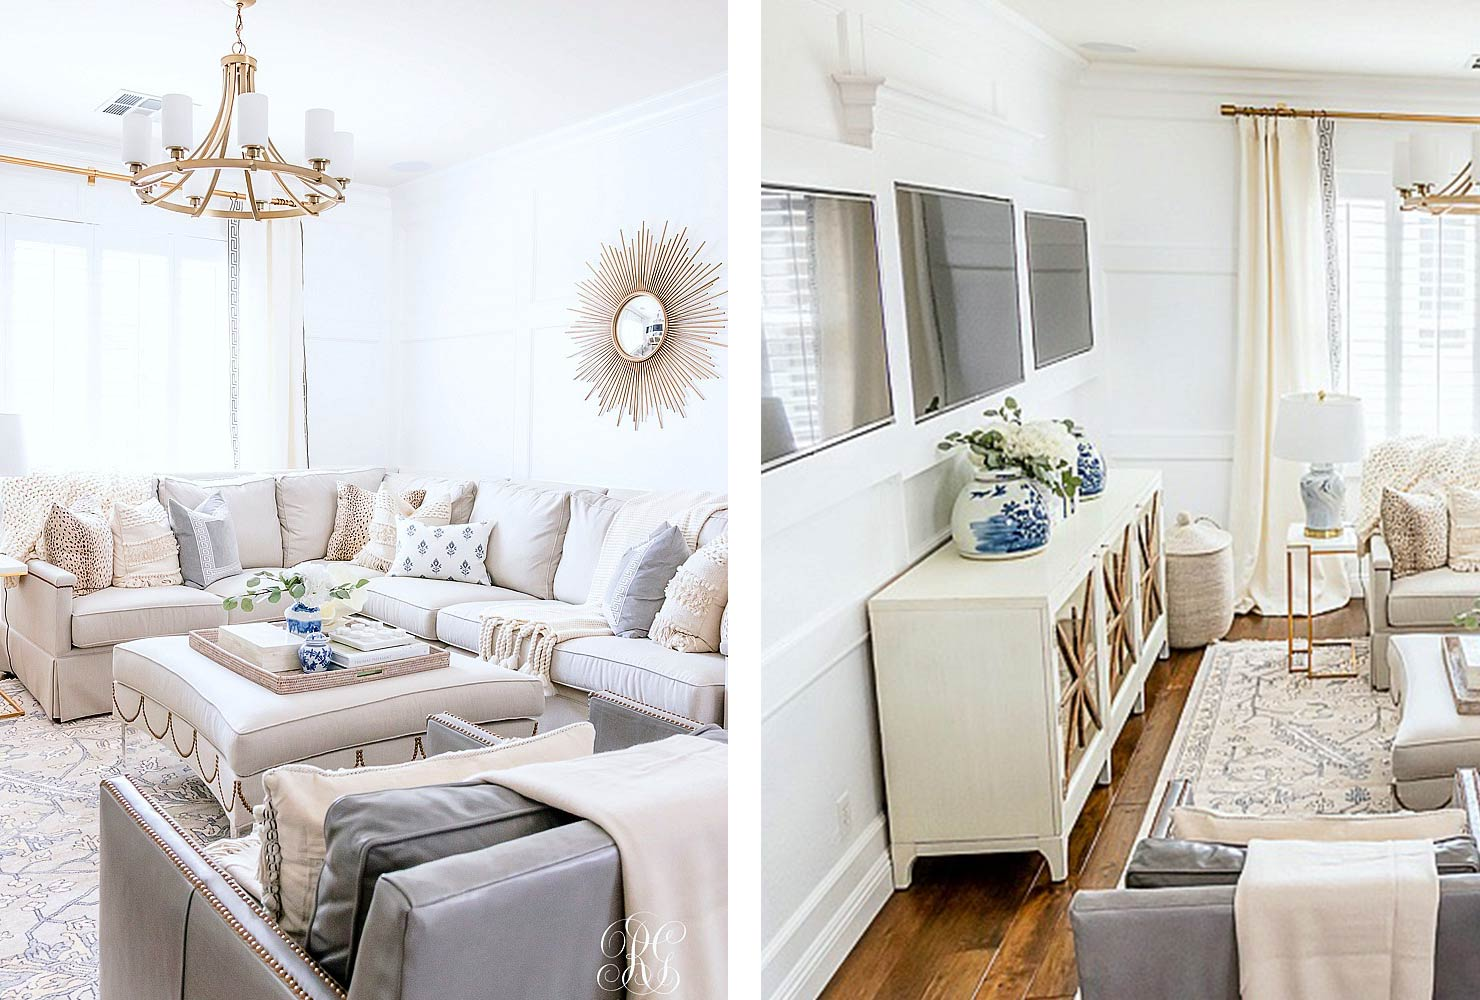 If you long for more room in your home, there's another solution besides moving to a larger house. 38 Best Game Room Ideas For Any Entertaining | Shutterfly